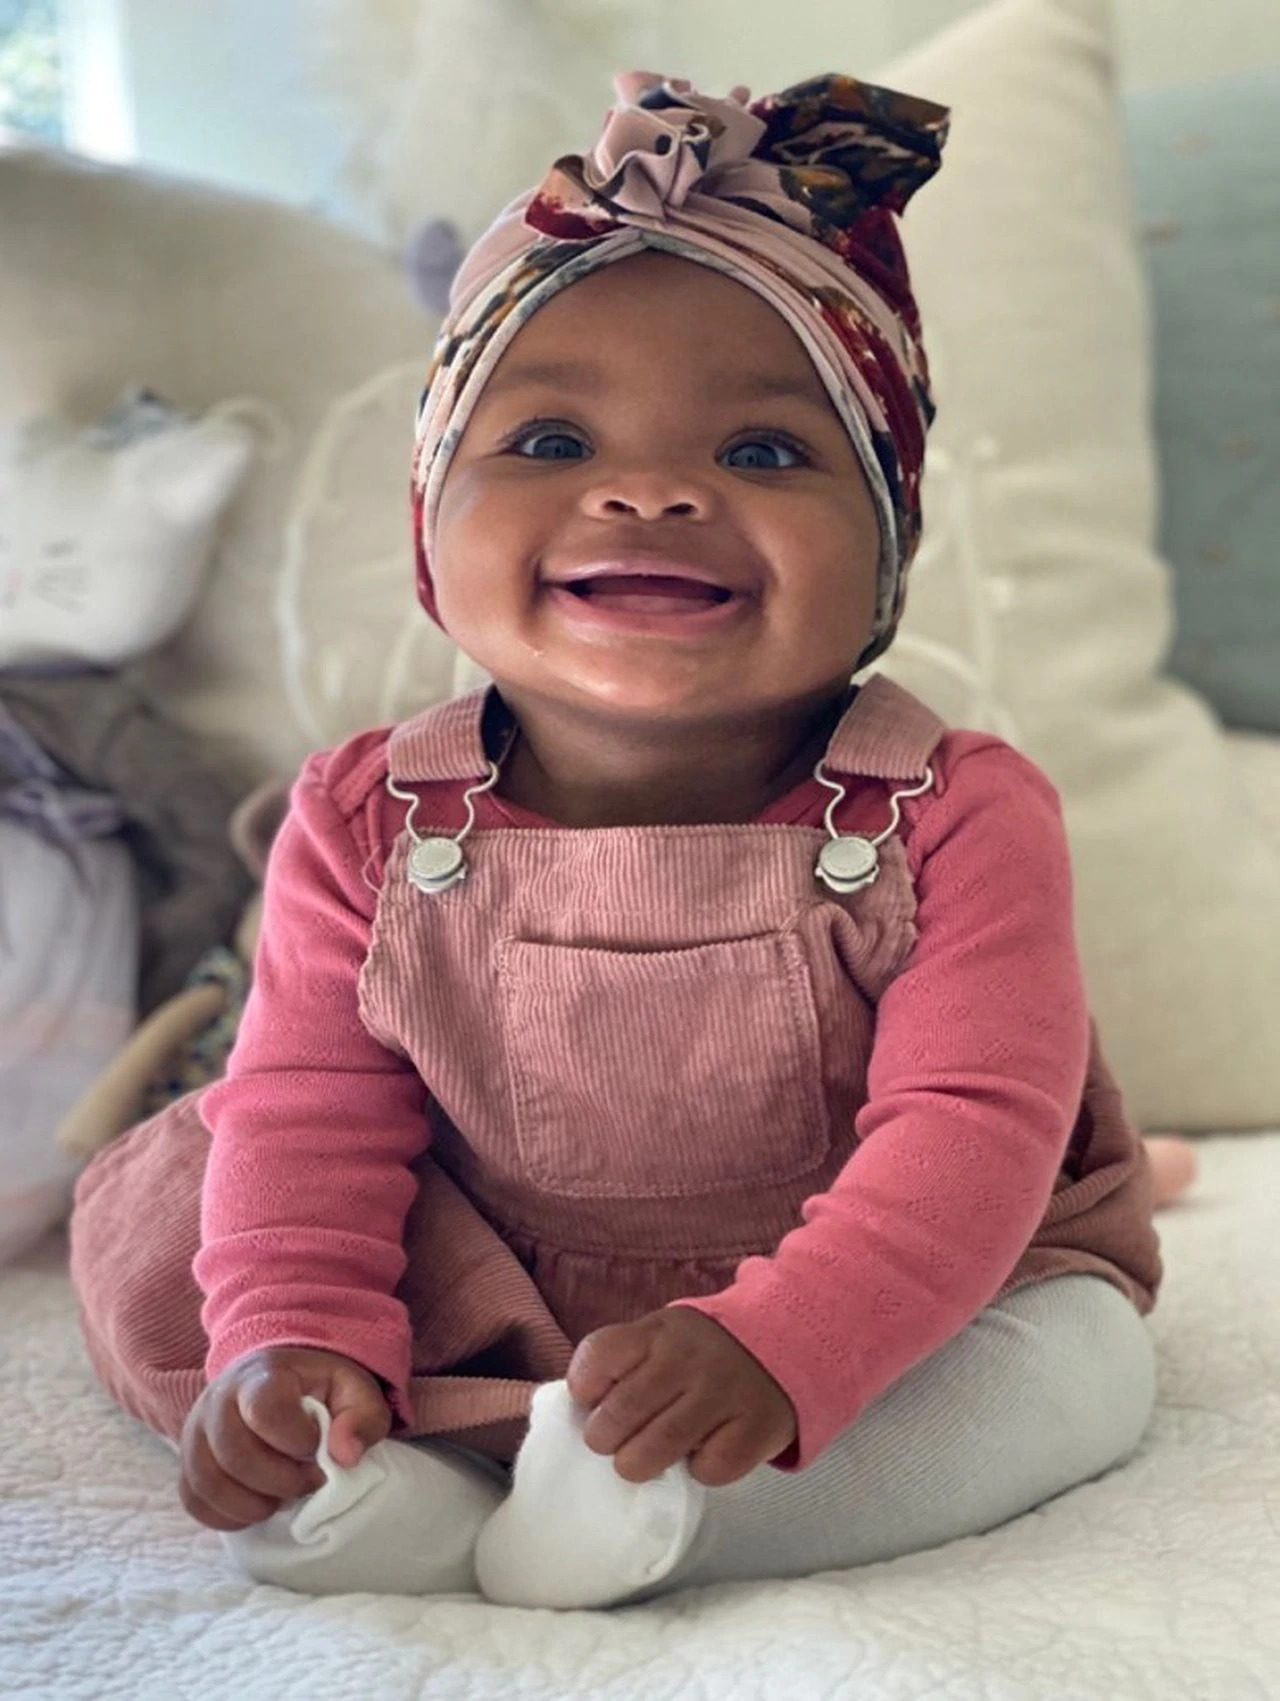 2020 Gerber Baby Is First Adopted Baby Chosen For Campaign 2020 Gerber Baby Is First Adopted Baby Chosen For Campaign